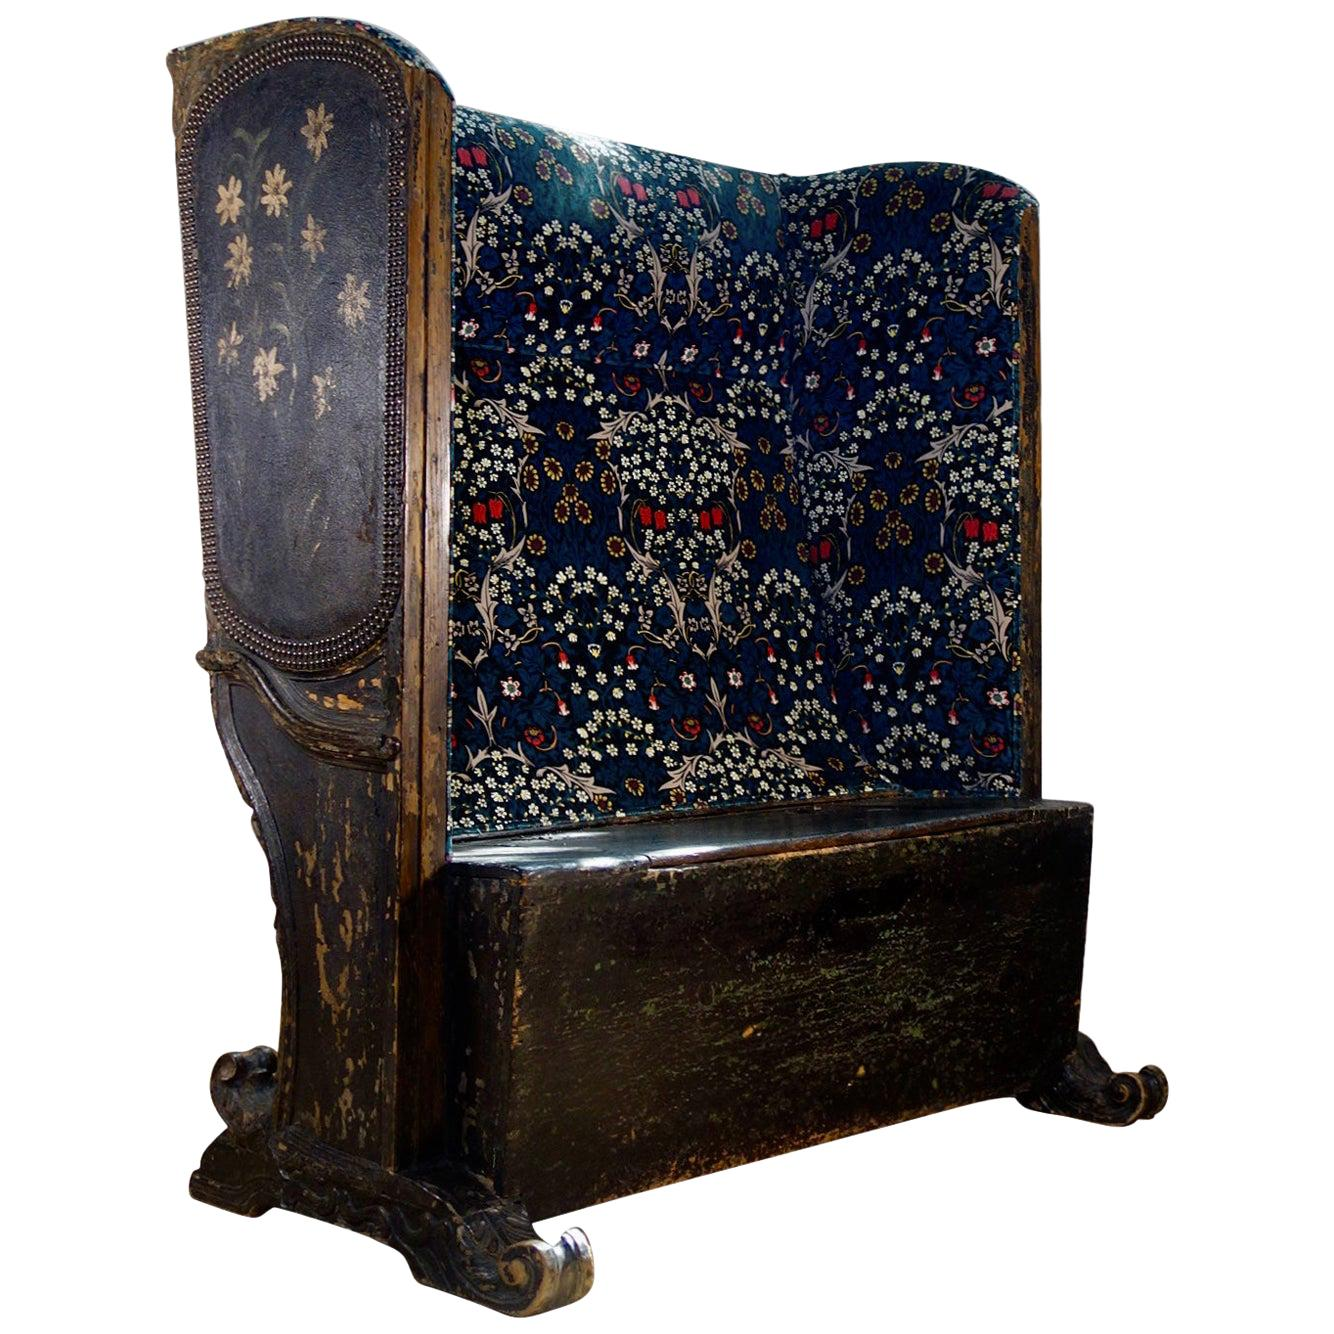 19th Century Painted Gothic Continental Leather Upholstered Settle Bench